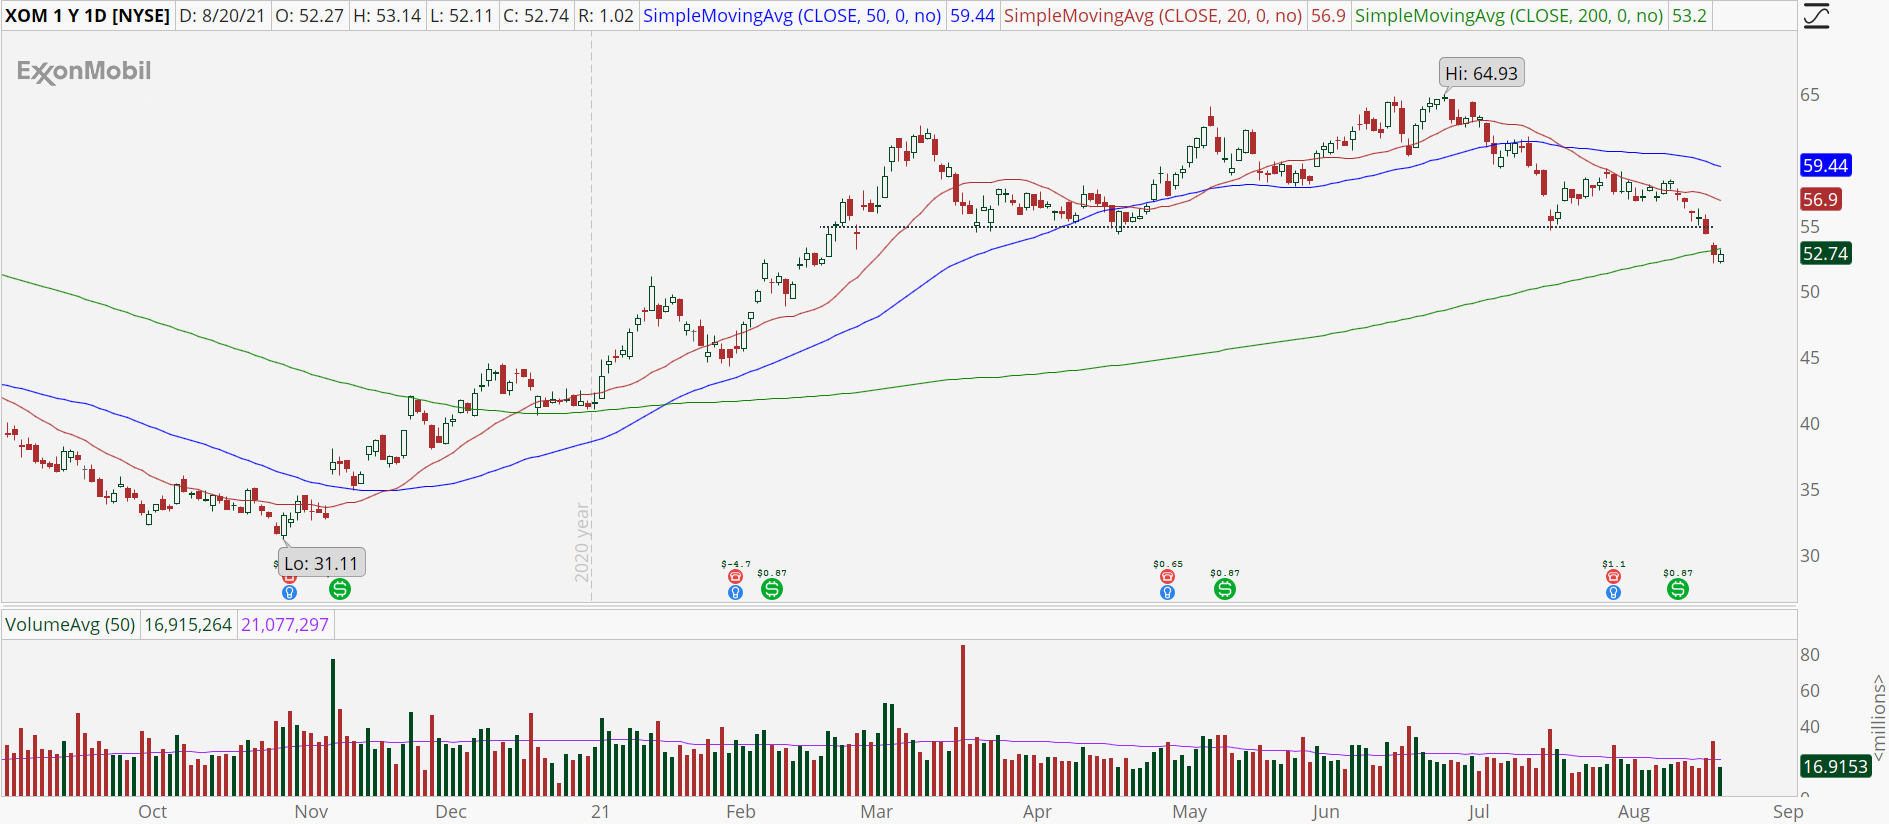 Exxon Mobil (XOM) stock chart with oversold pattern.